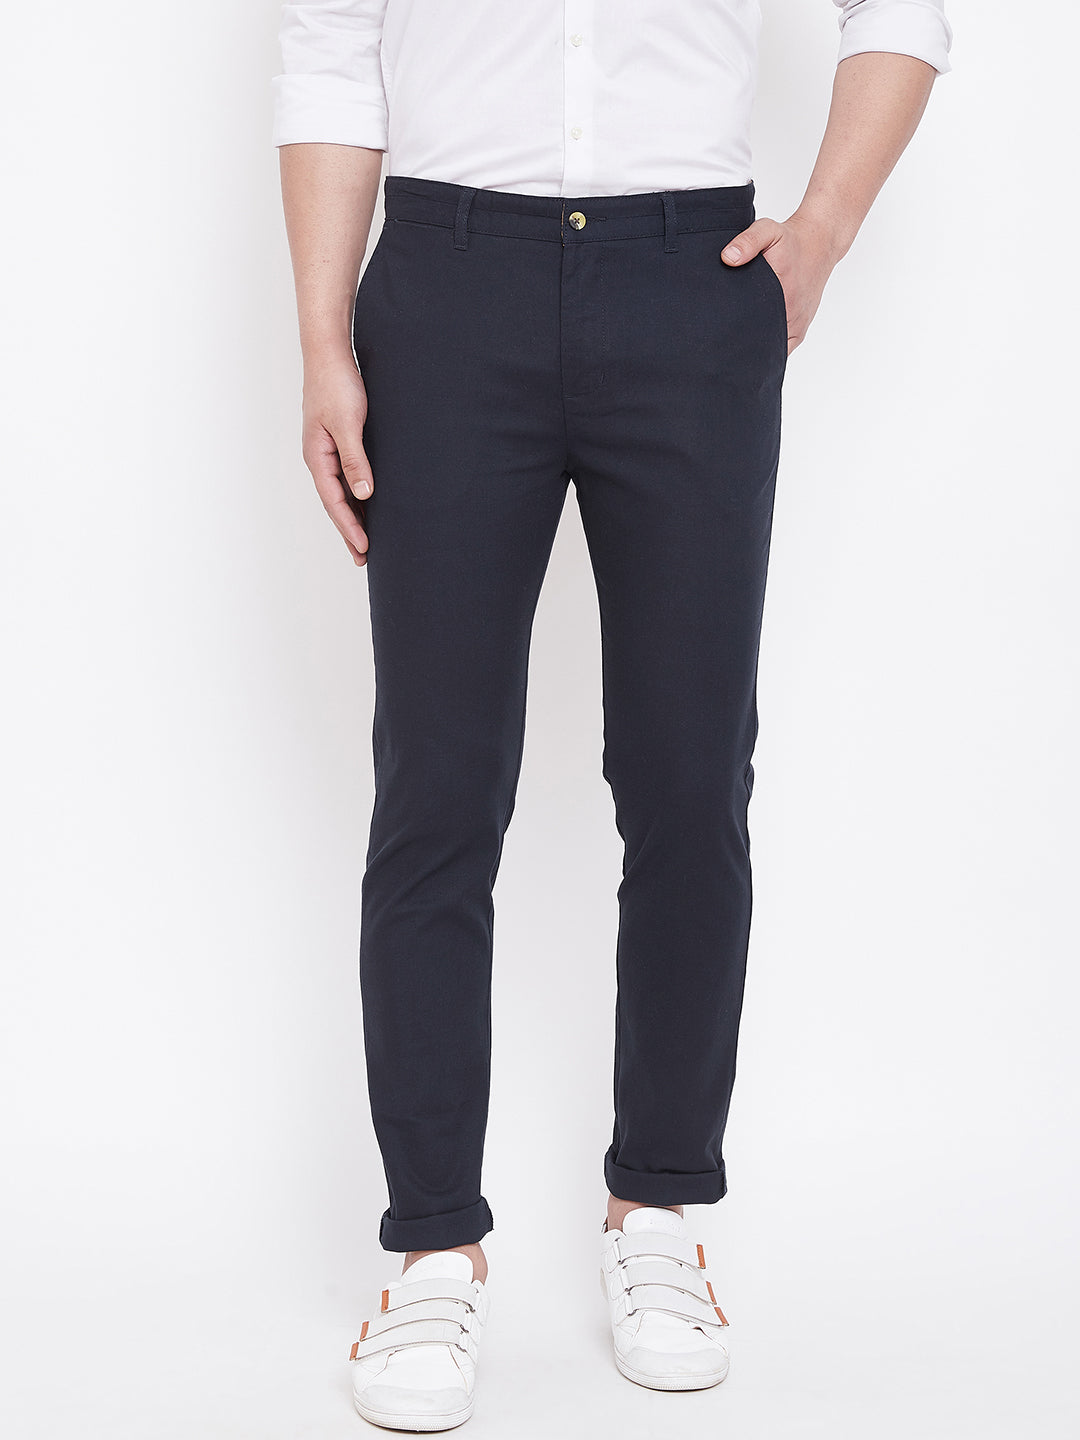 JUMP USA Men Navy Balue Casual Slim Fit Trousers - JUMP USA